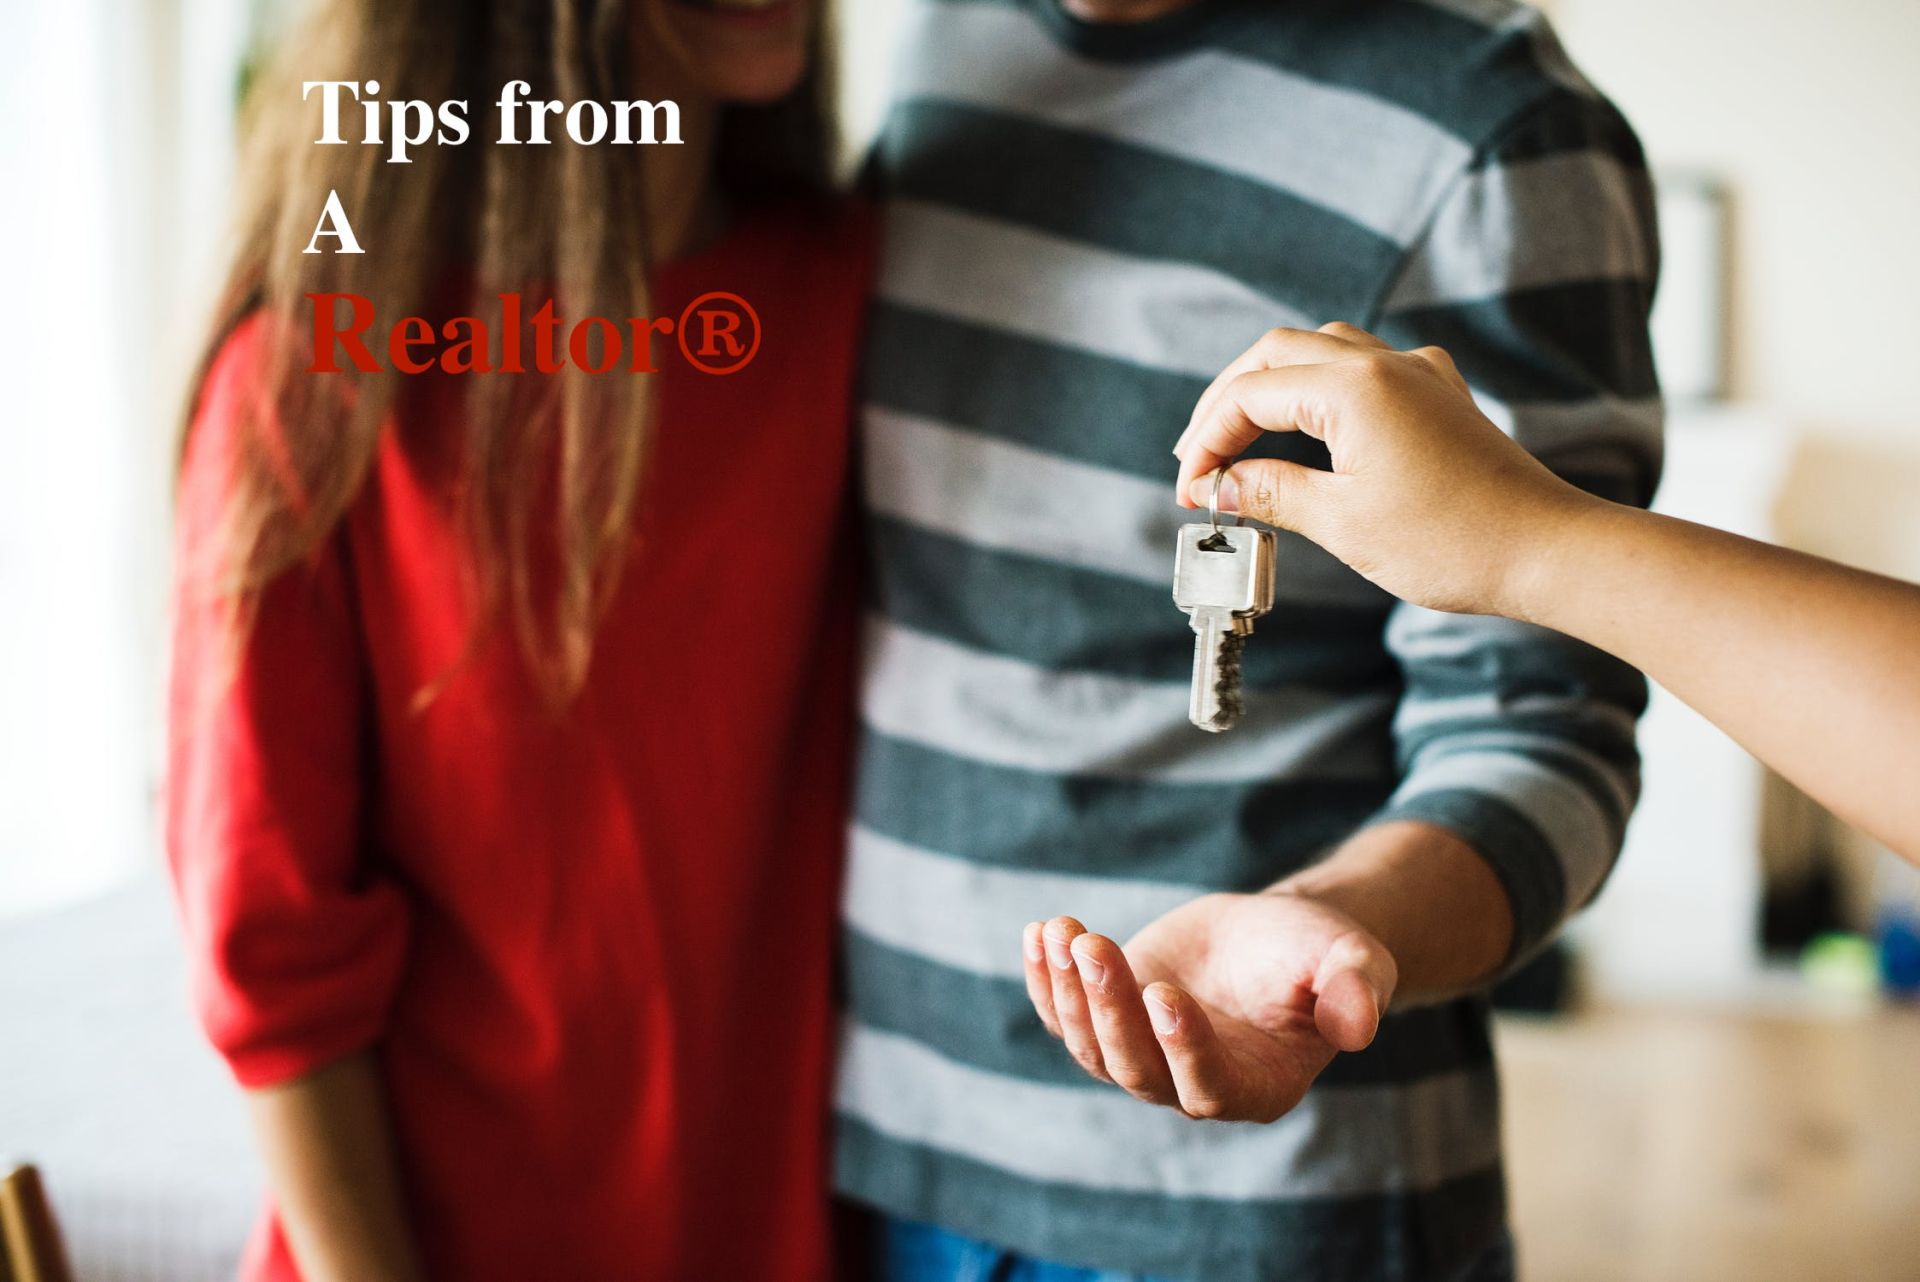 Tips from a Realtor® – Cameron Mabe